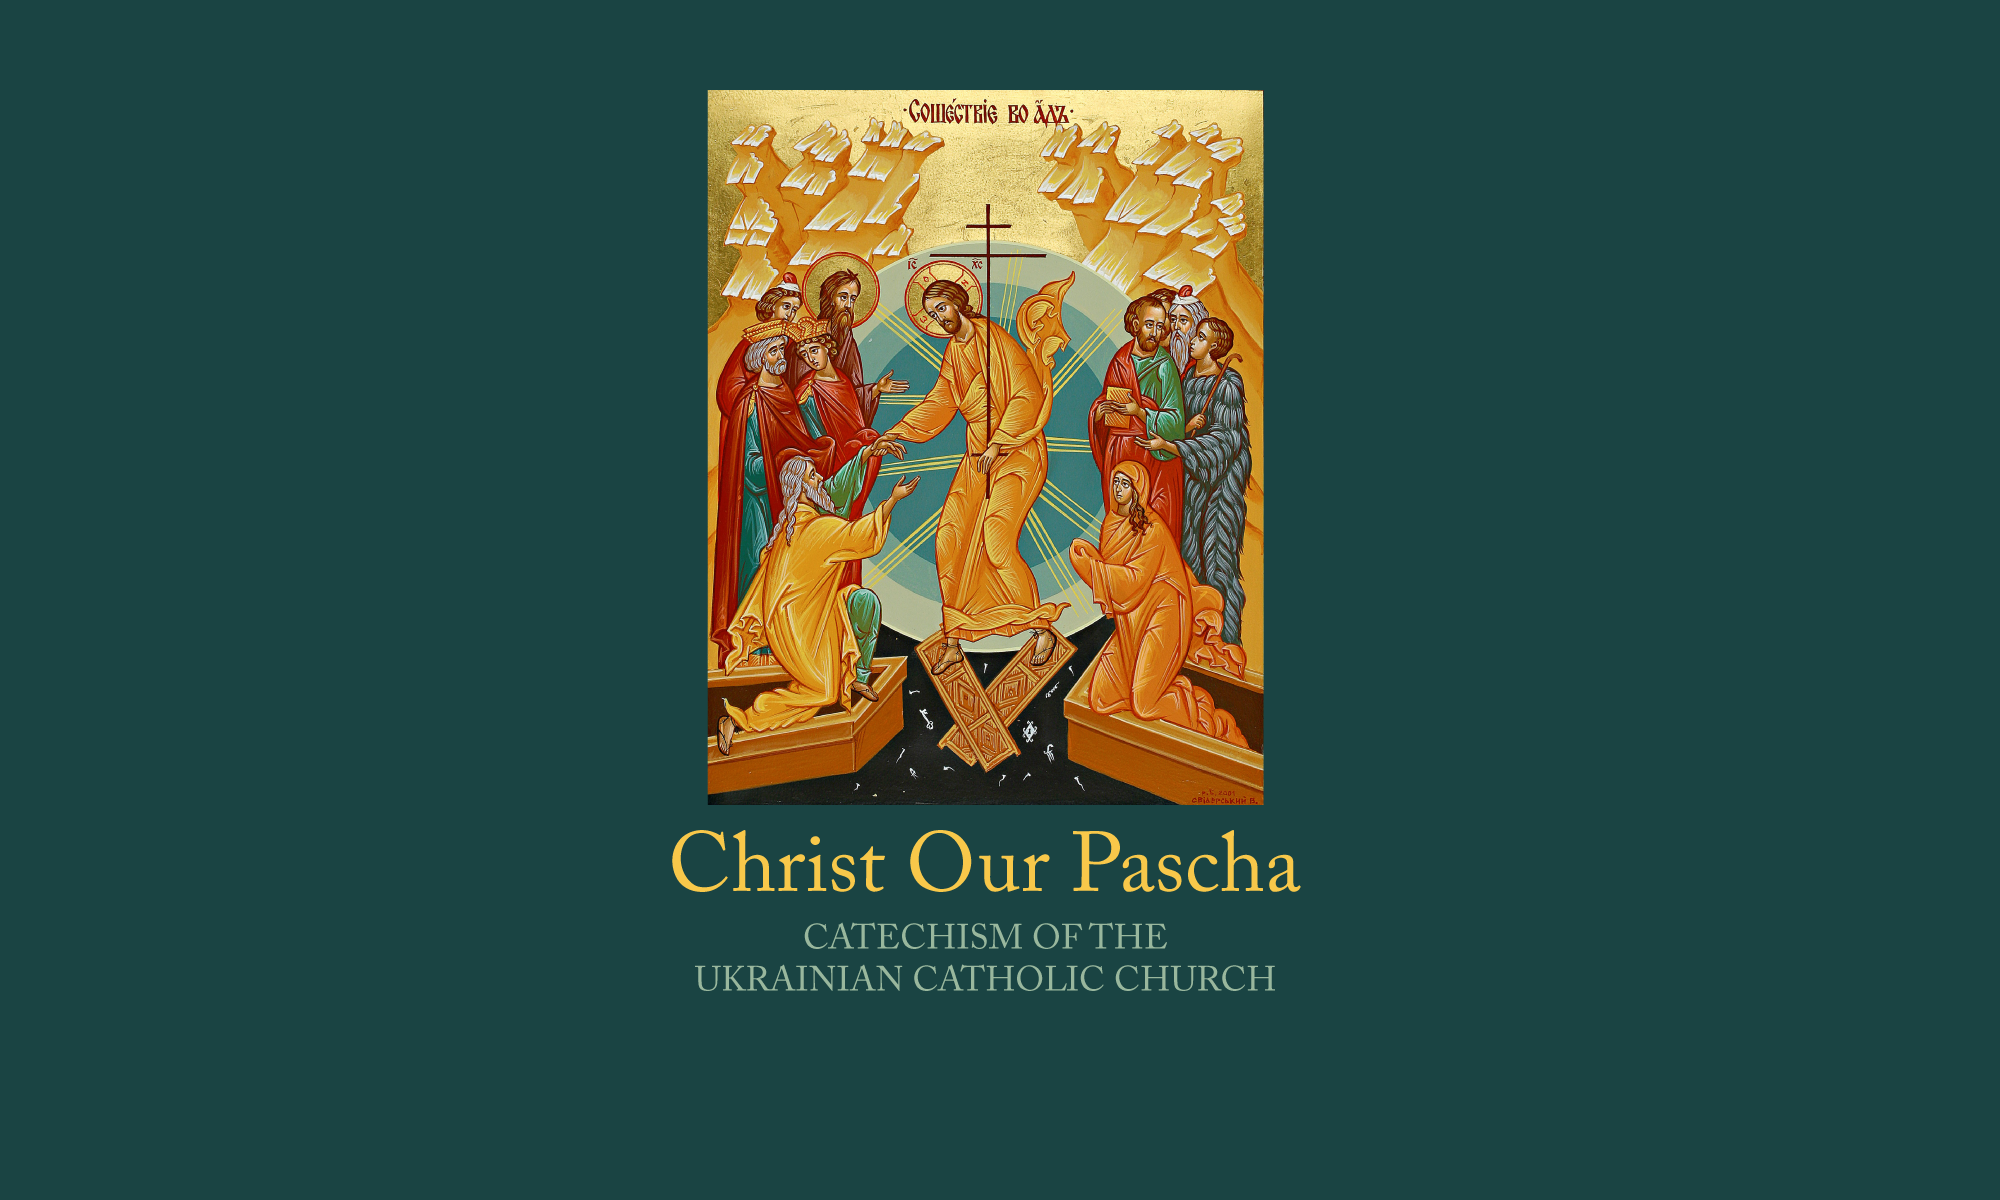 Christ Our Pascha